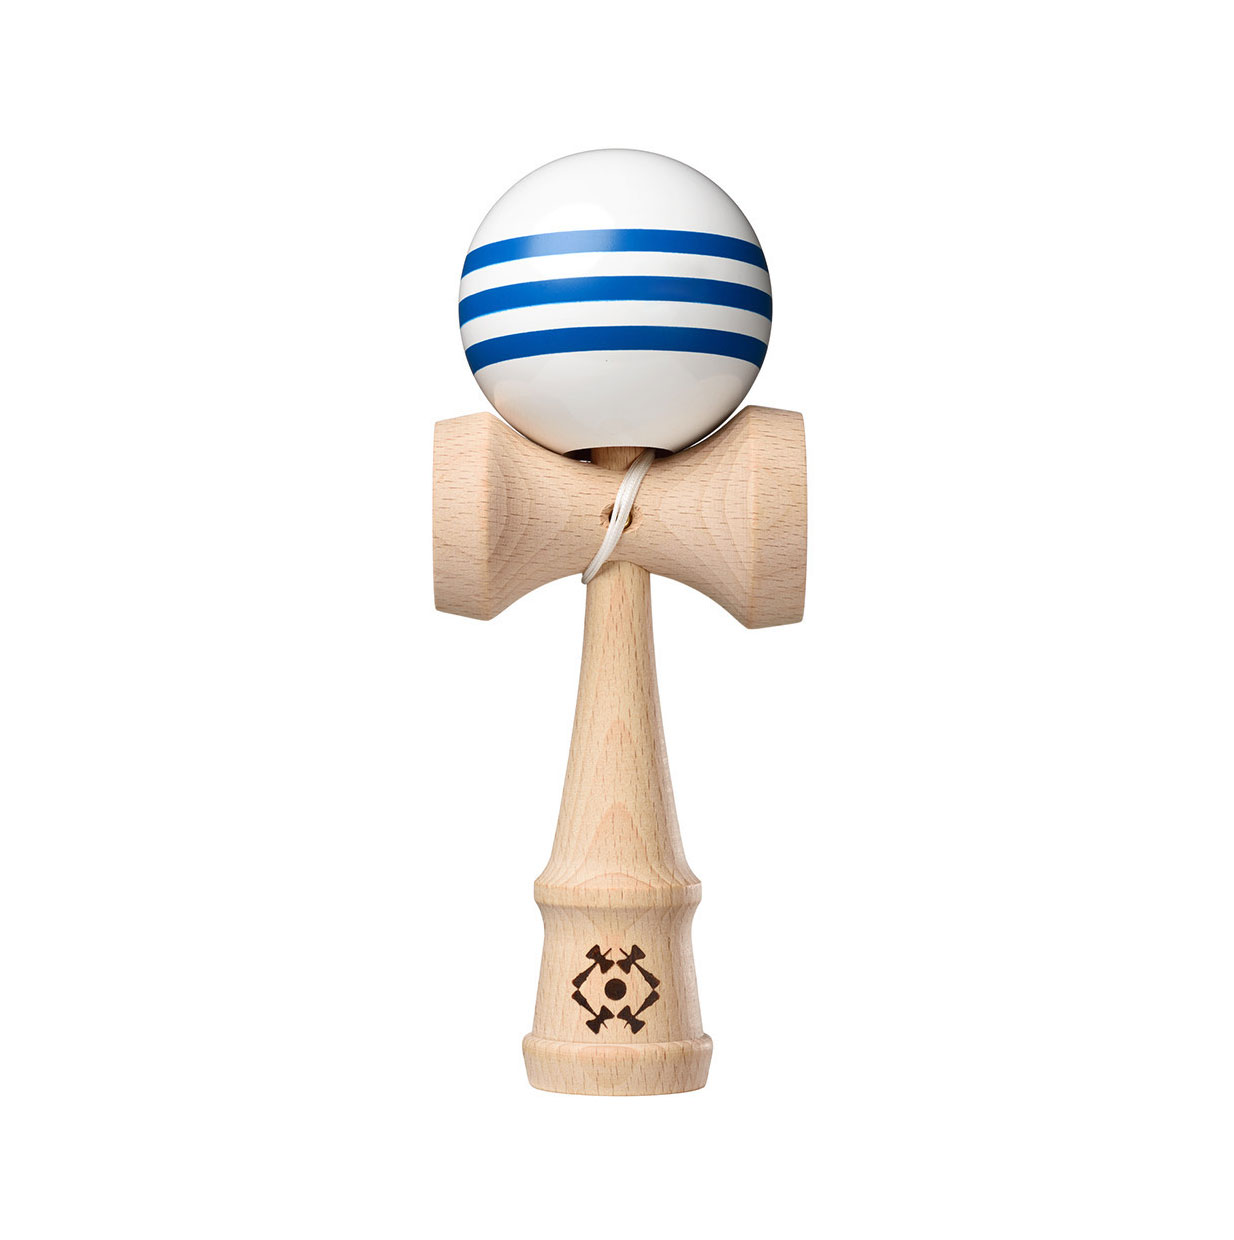 Tribute Kendama - White with 3 Blue Stripes